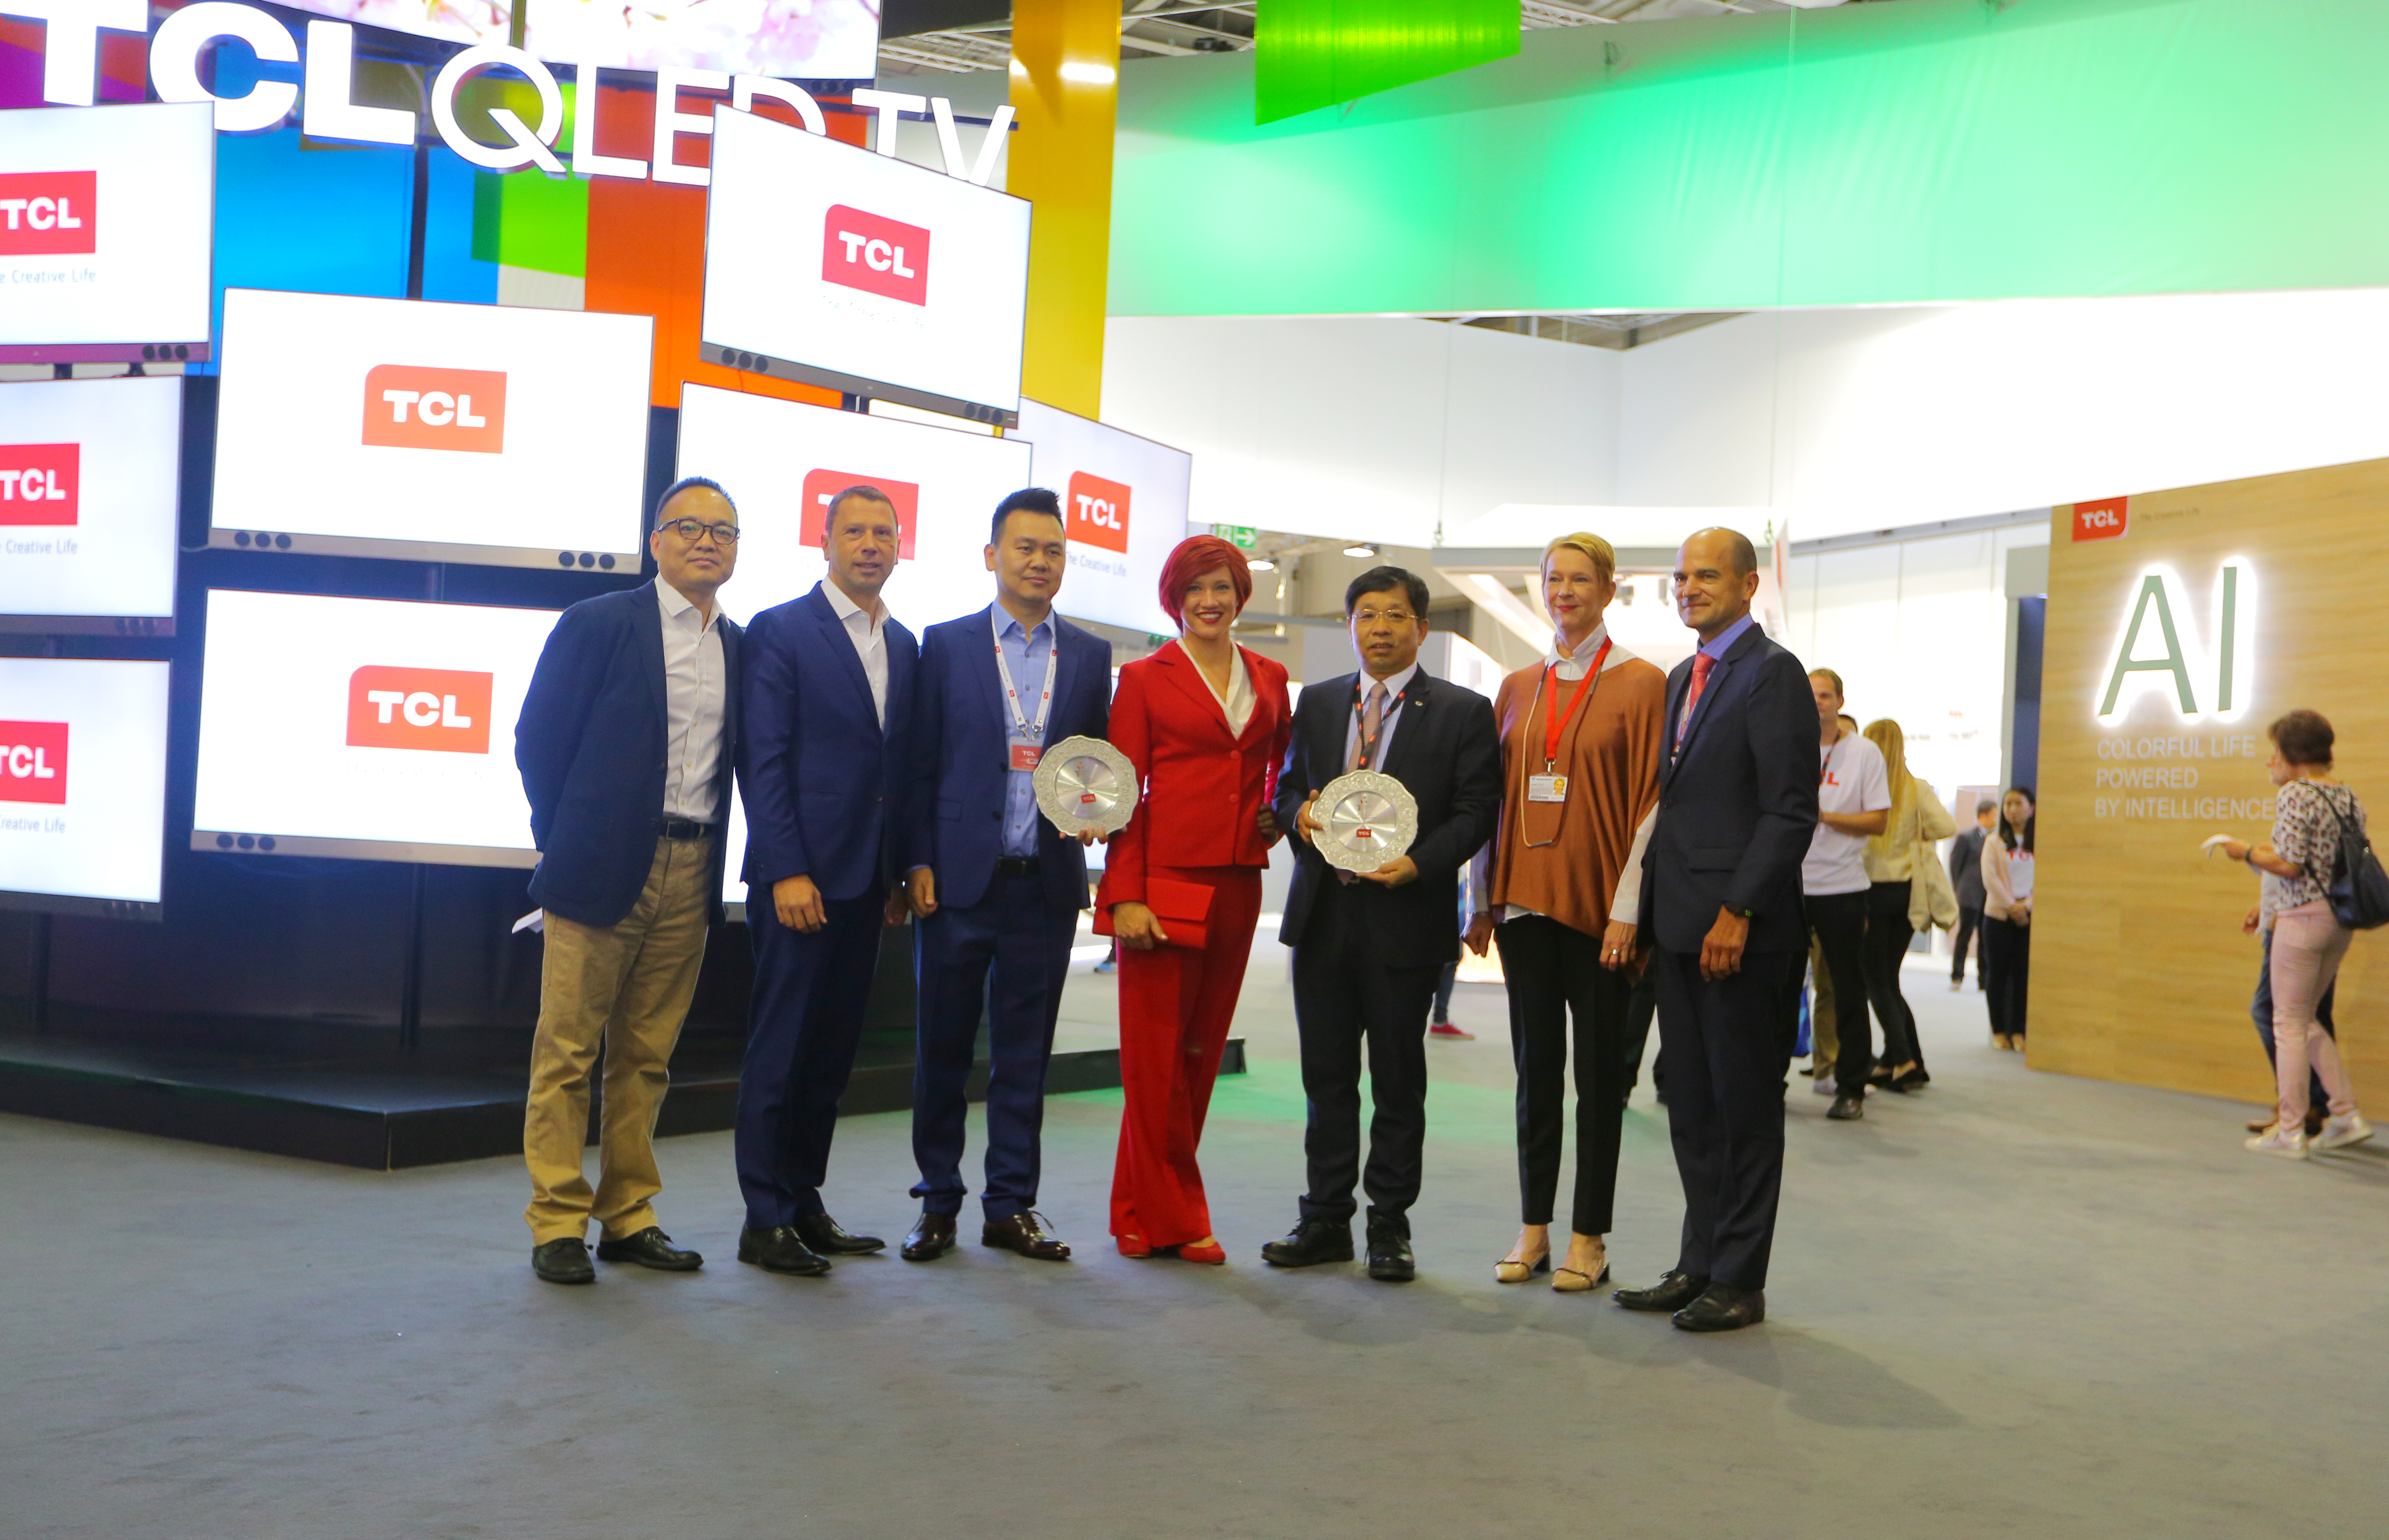 TCL wins prestigious 2017 IFA Product Technical Innovation Awards. (Photo from TCL)